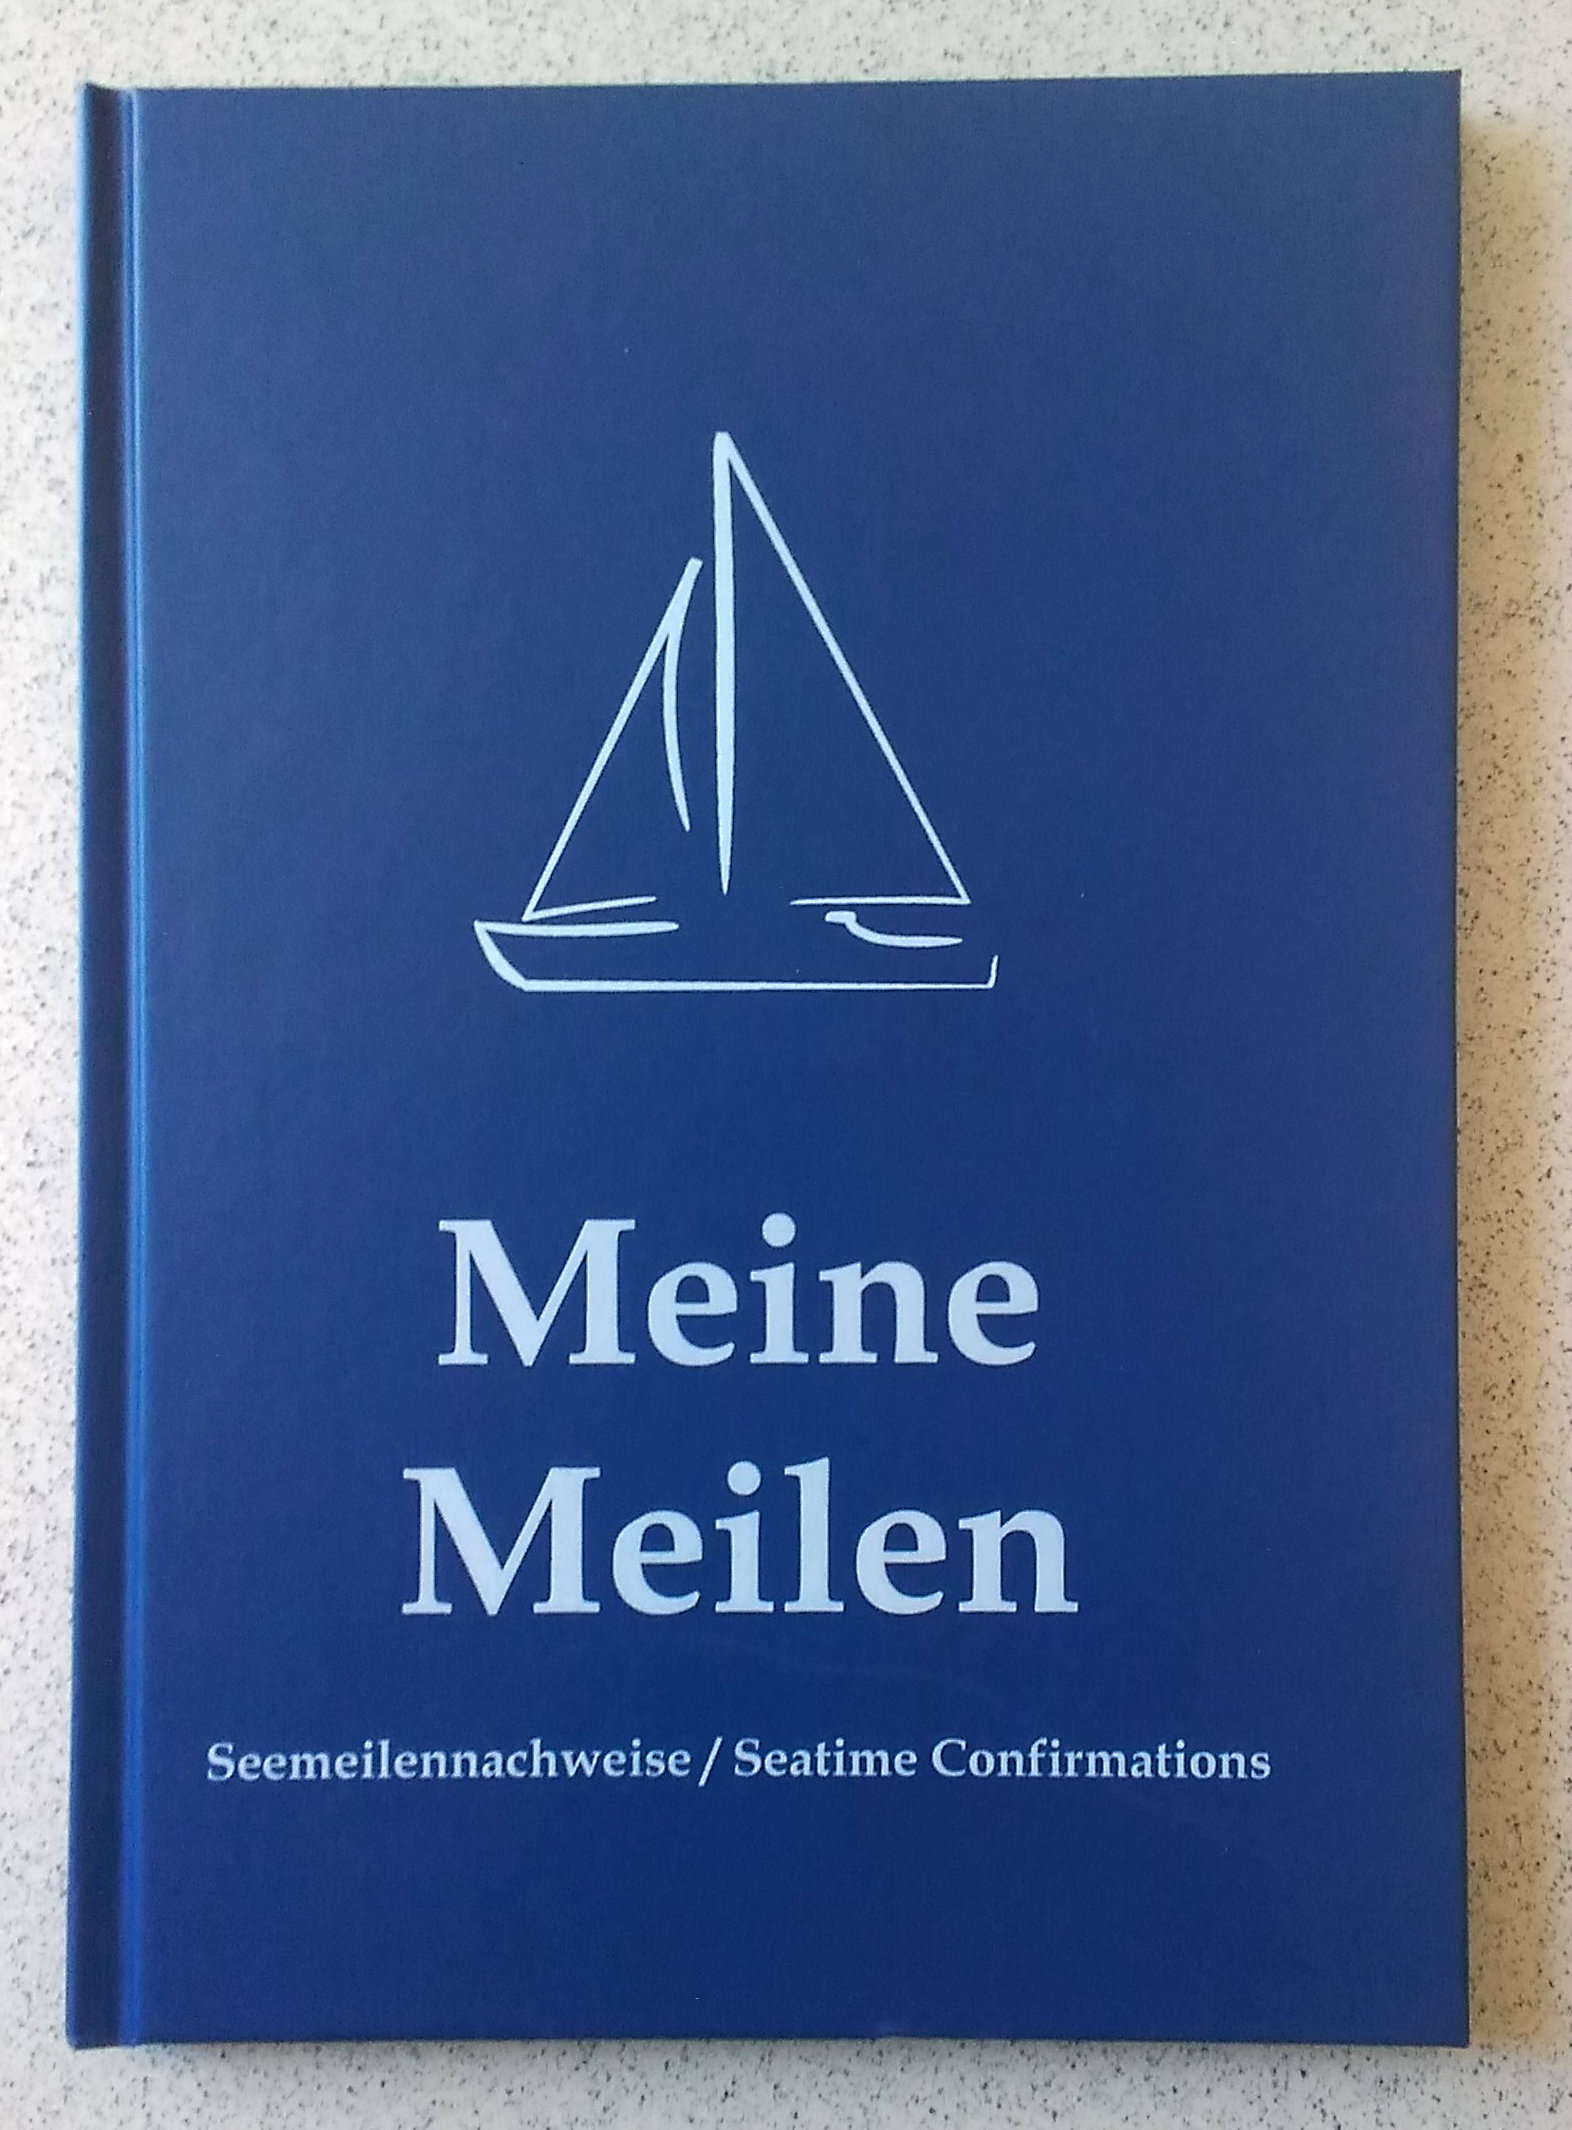 Meine Meilen Cover Amazon